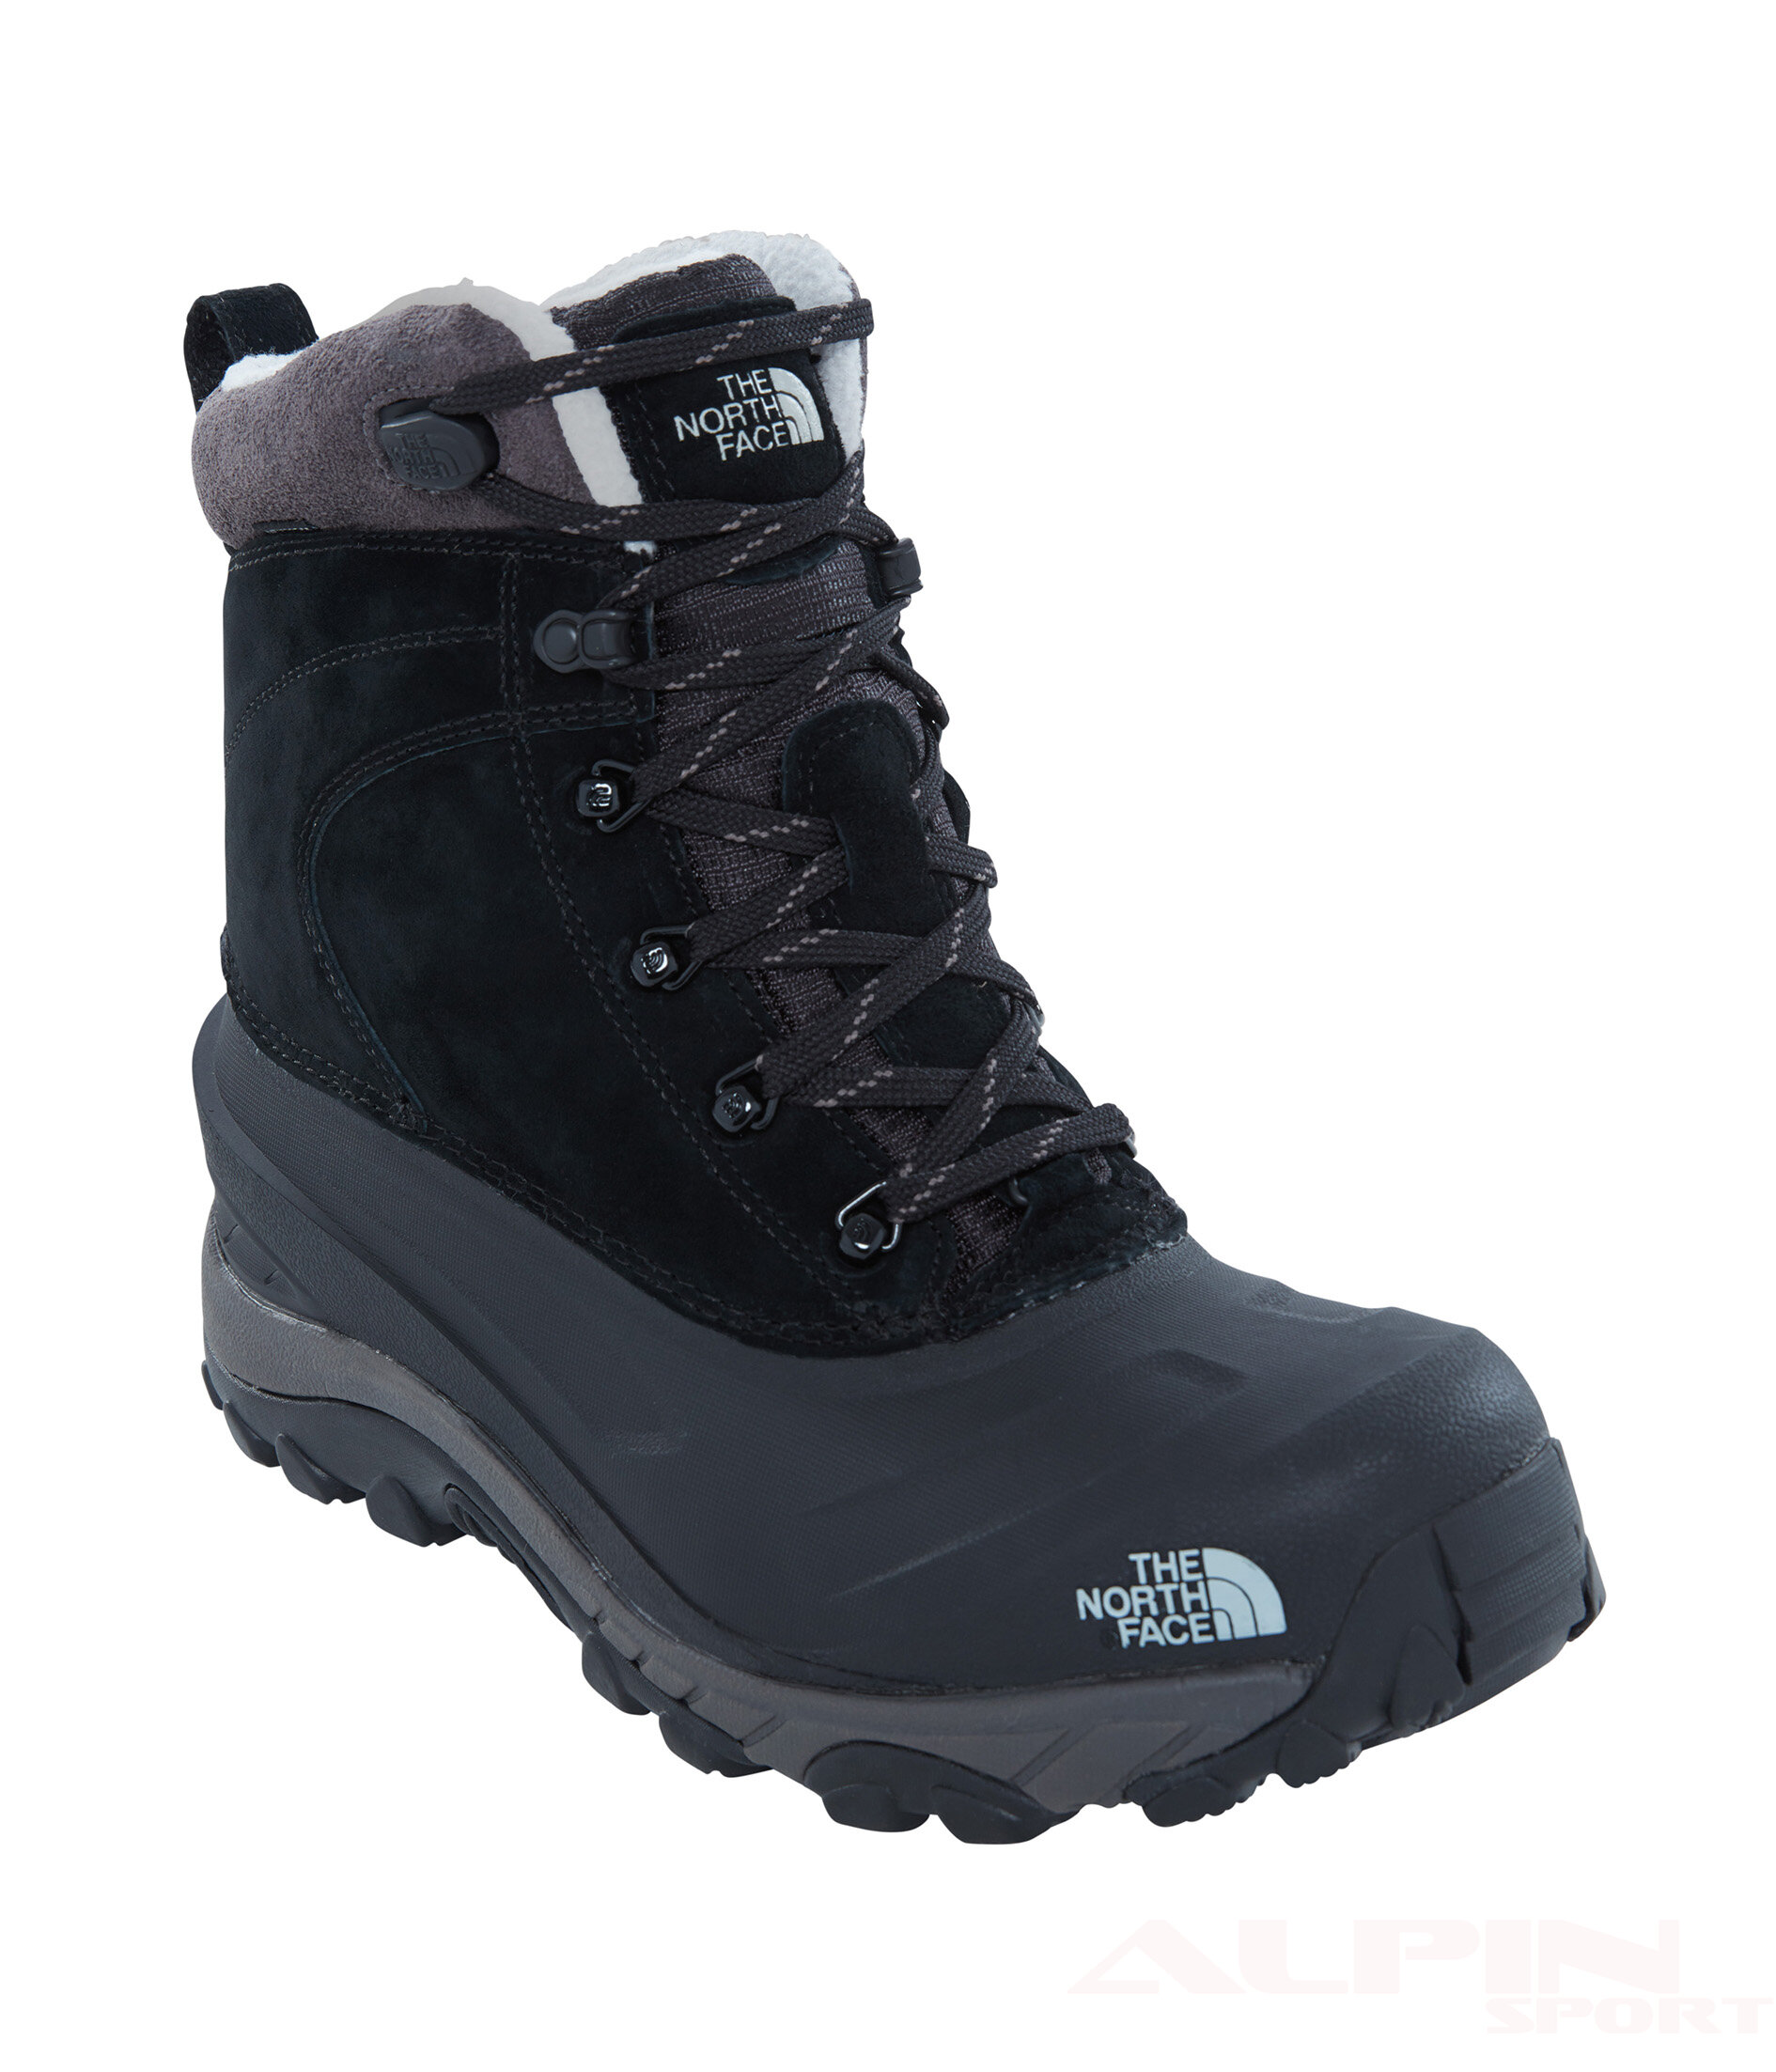 Buty męskie THE NORTH FACE Chilkat III 011_LO_39V6 WE3 3